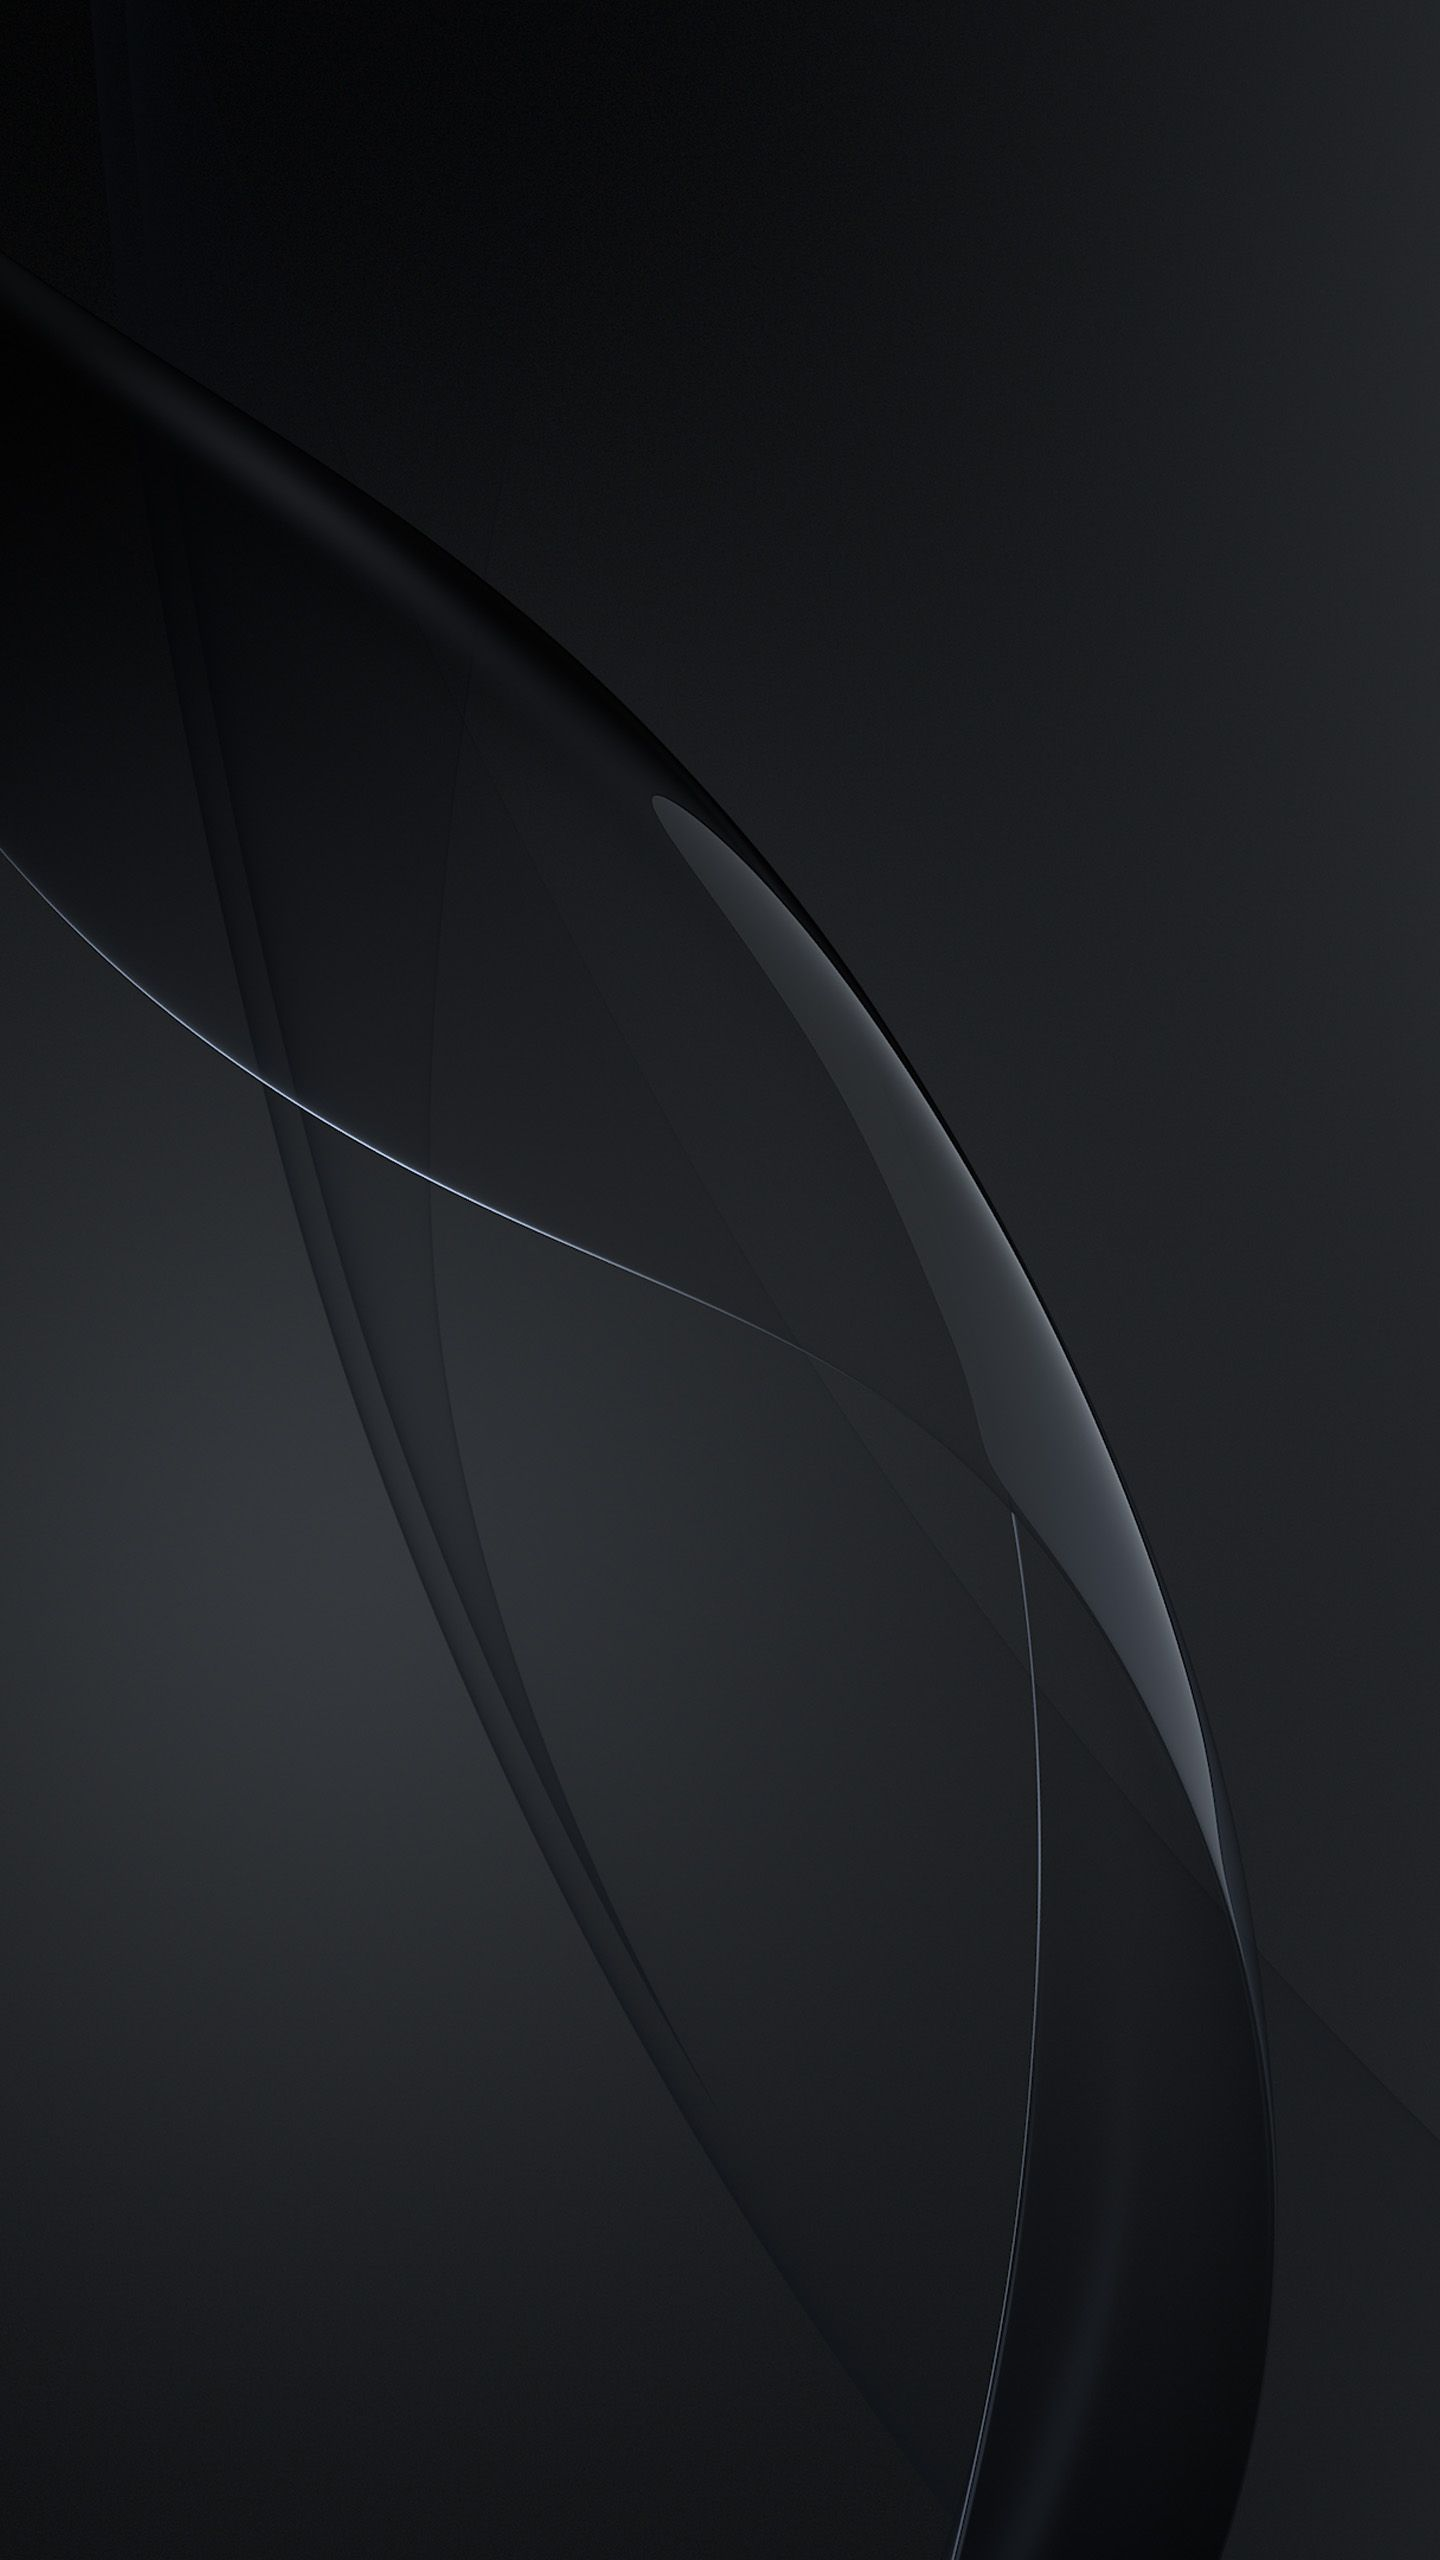 1080p Android Black Wallpaper Lit It Up